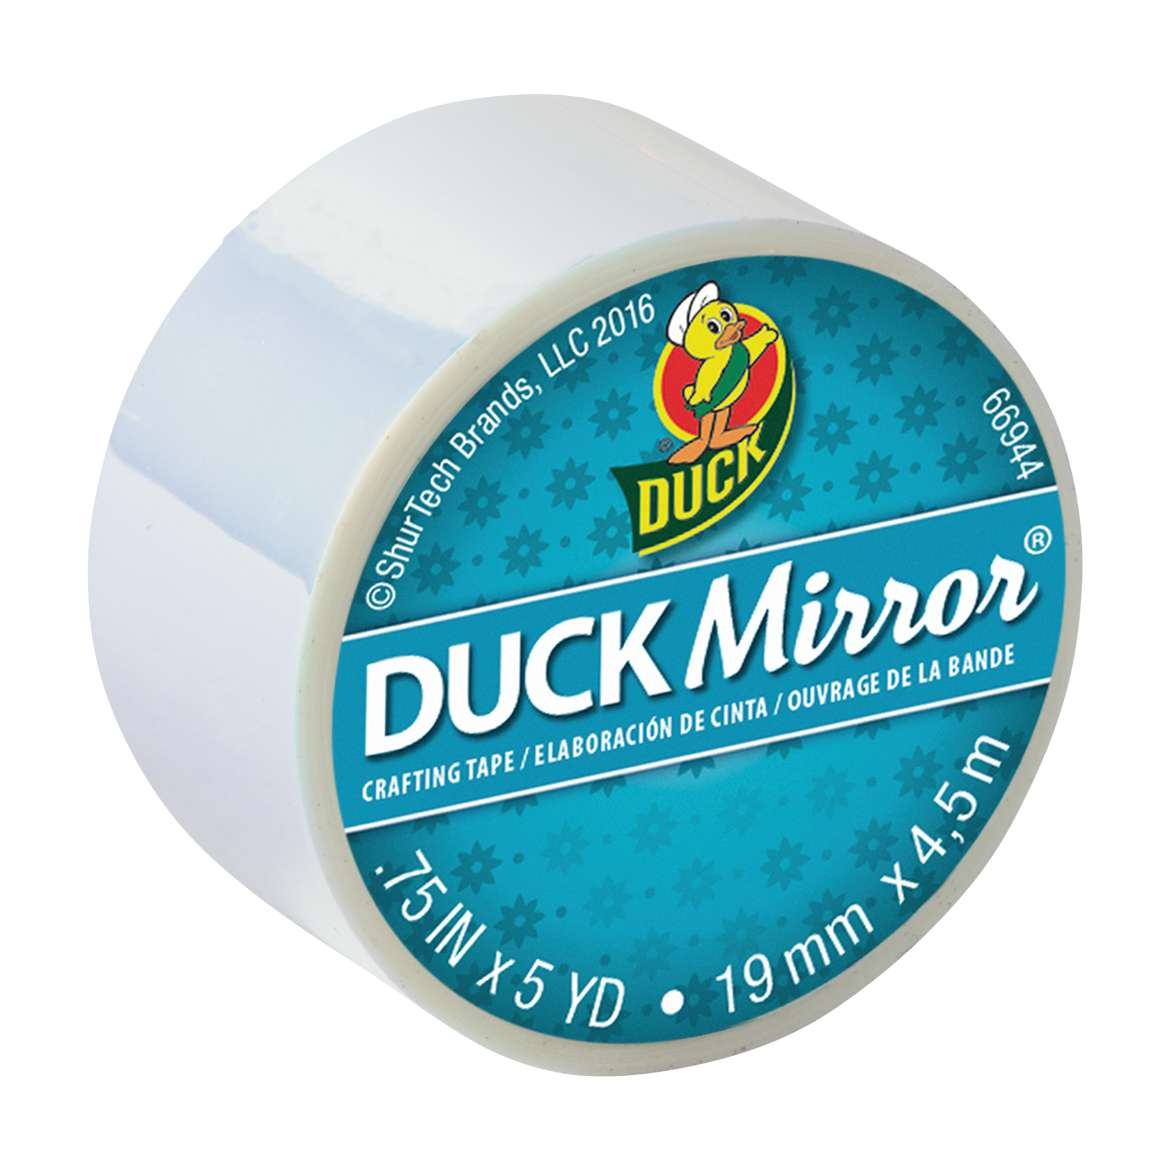 Duck Mirror® Crafting Tape - White, 0.75 in. x 5 yd. Image